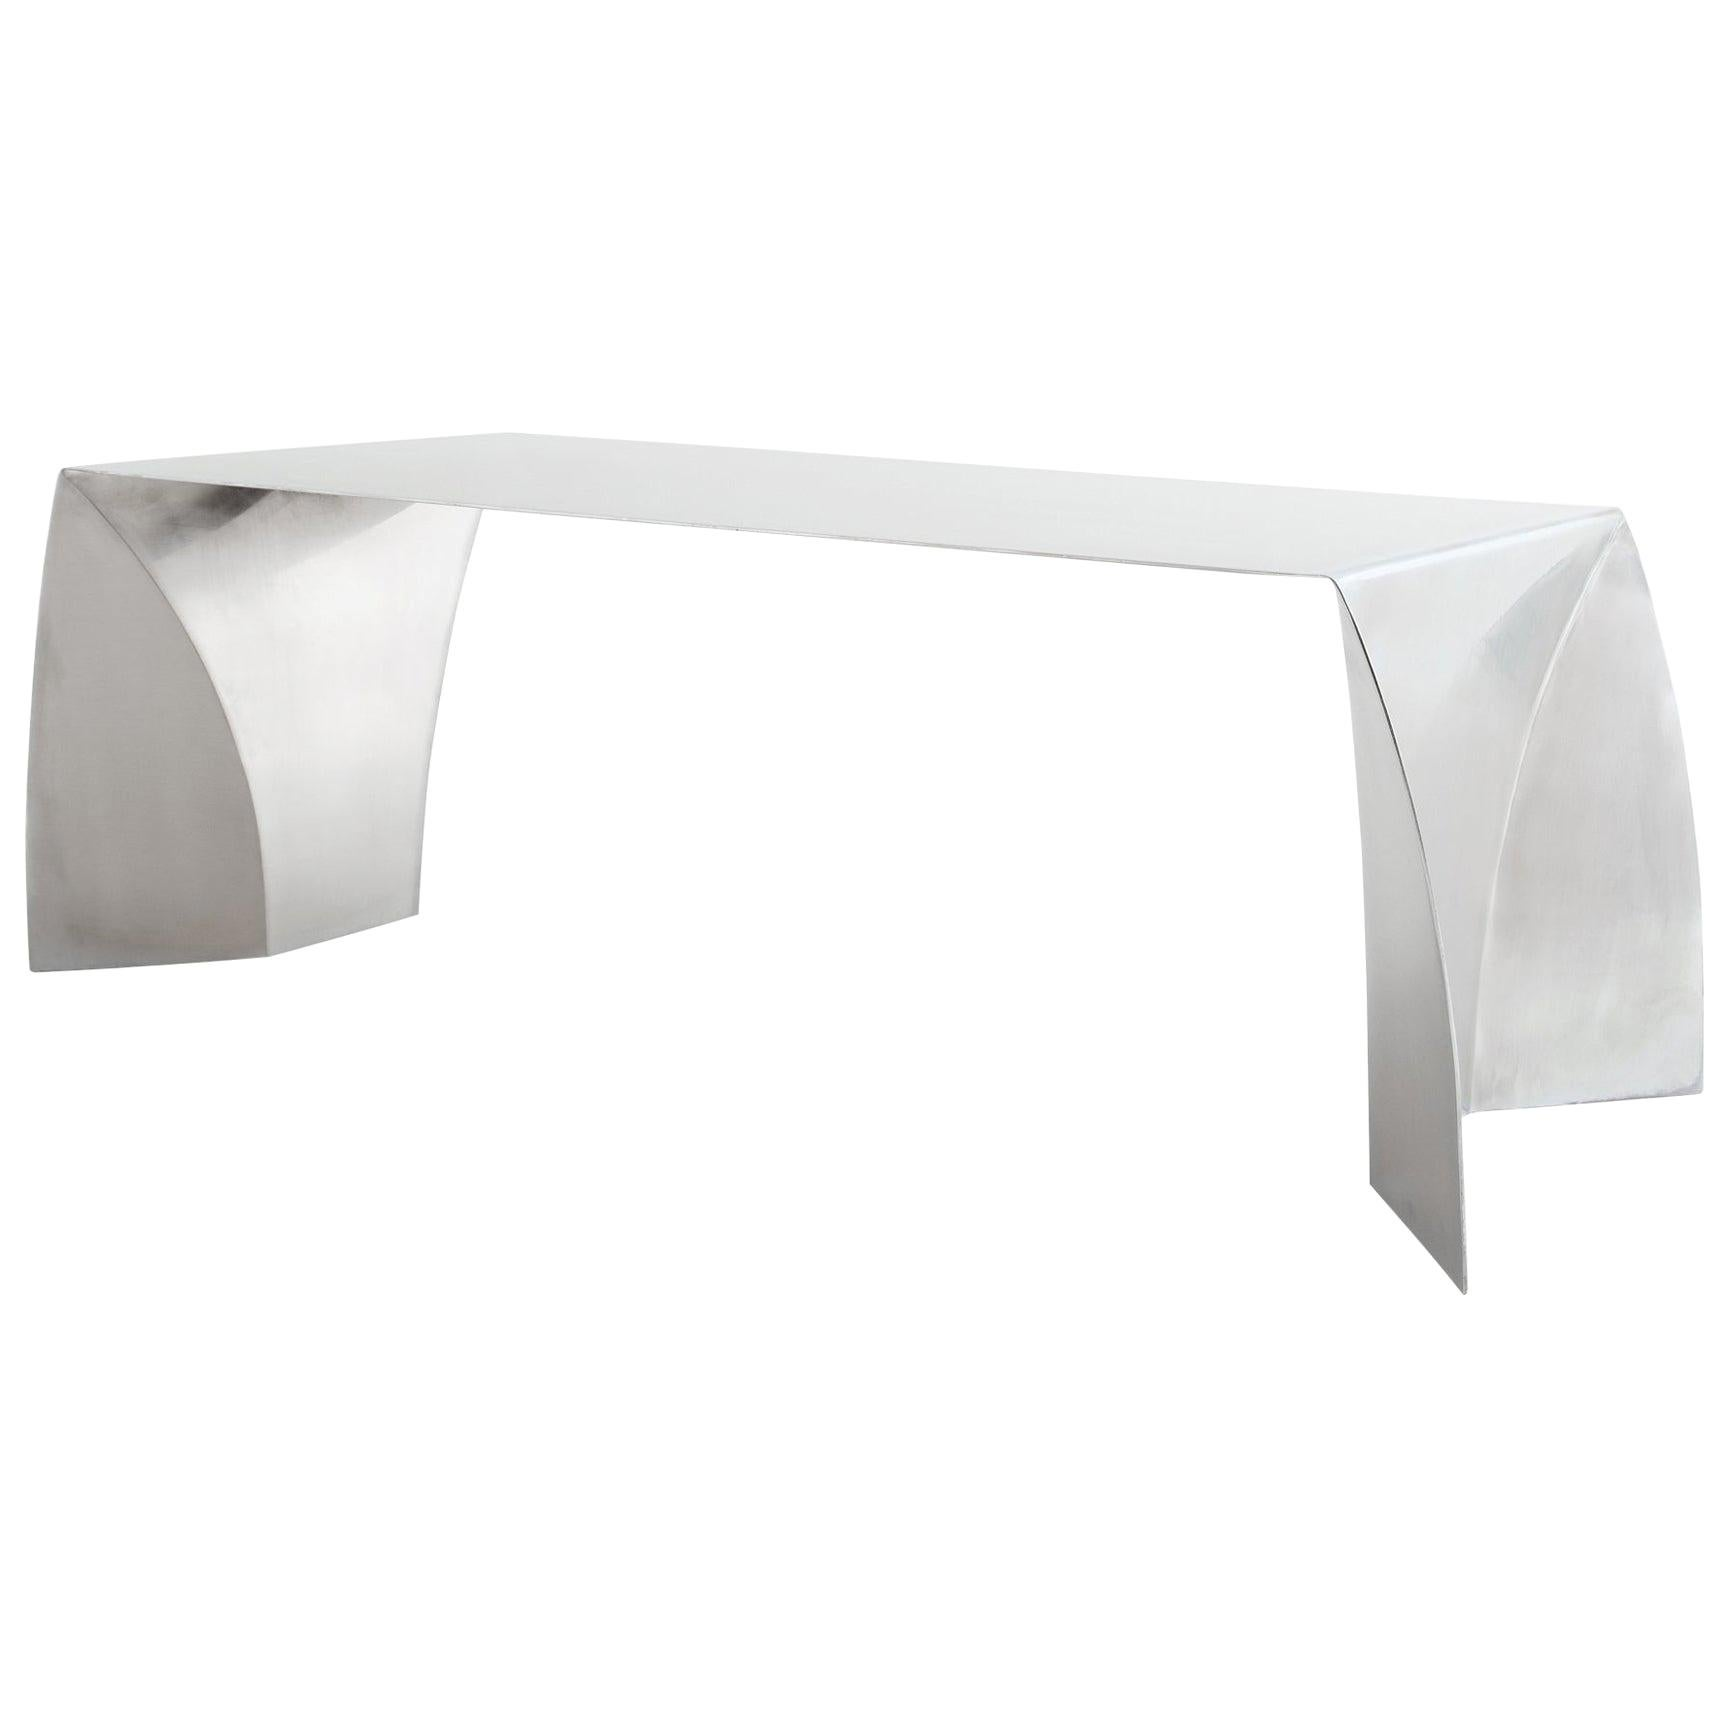 Adolfo Abejon Contemporary Design Limited Edition Kate Coffee Table